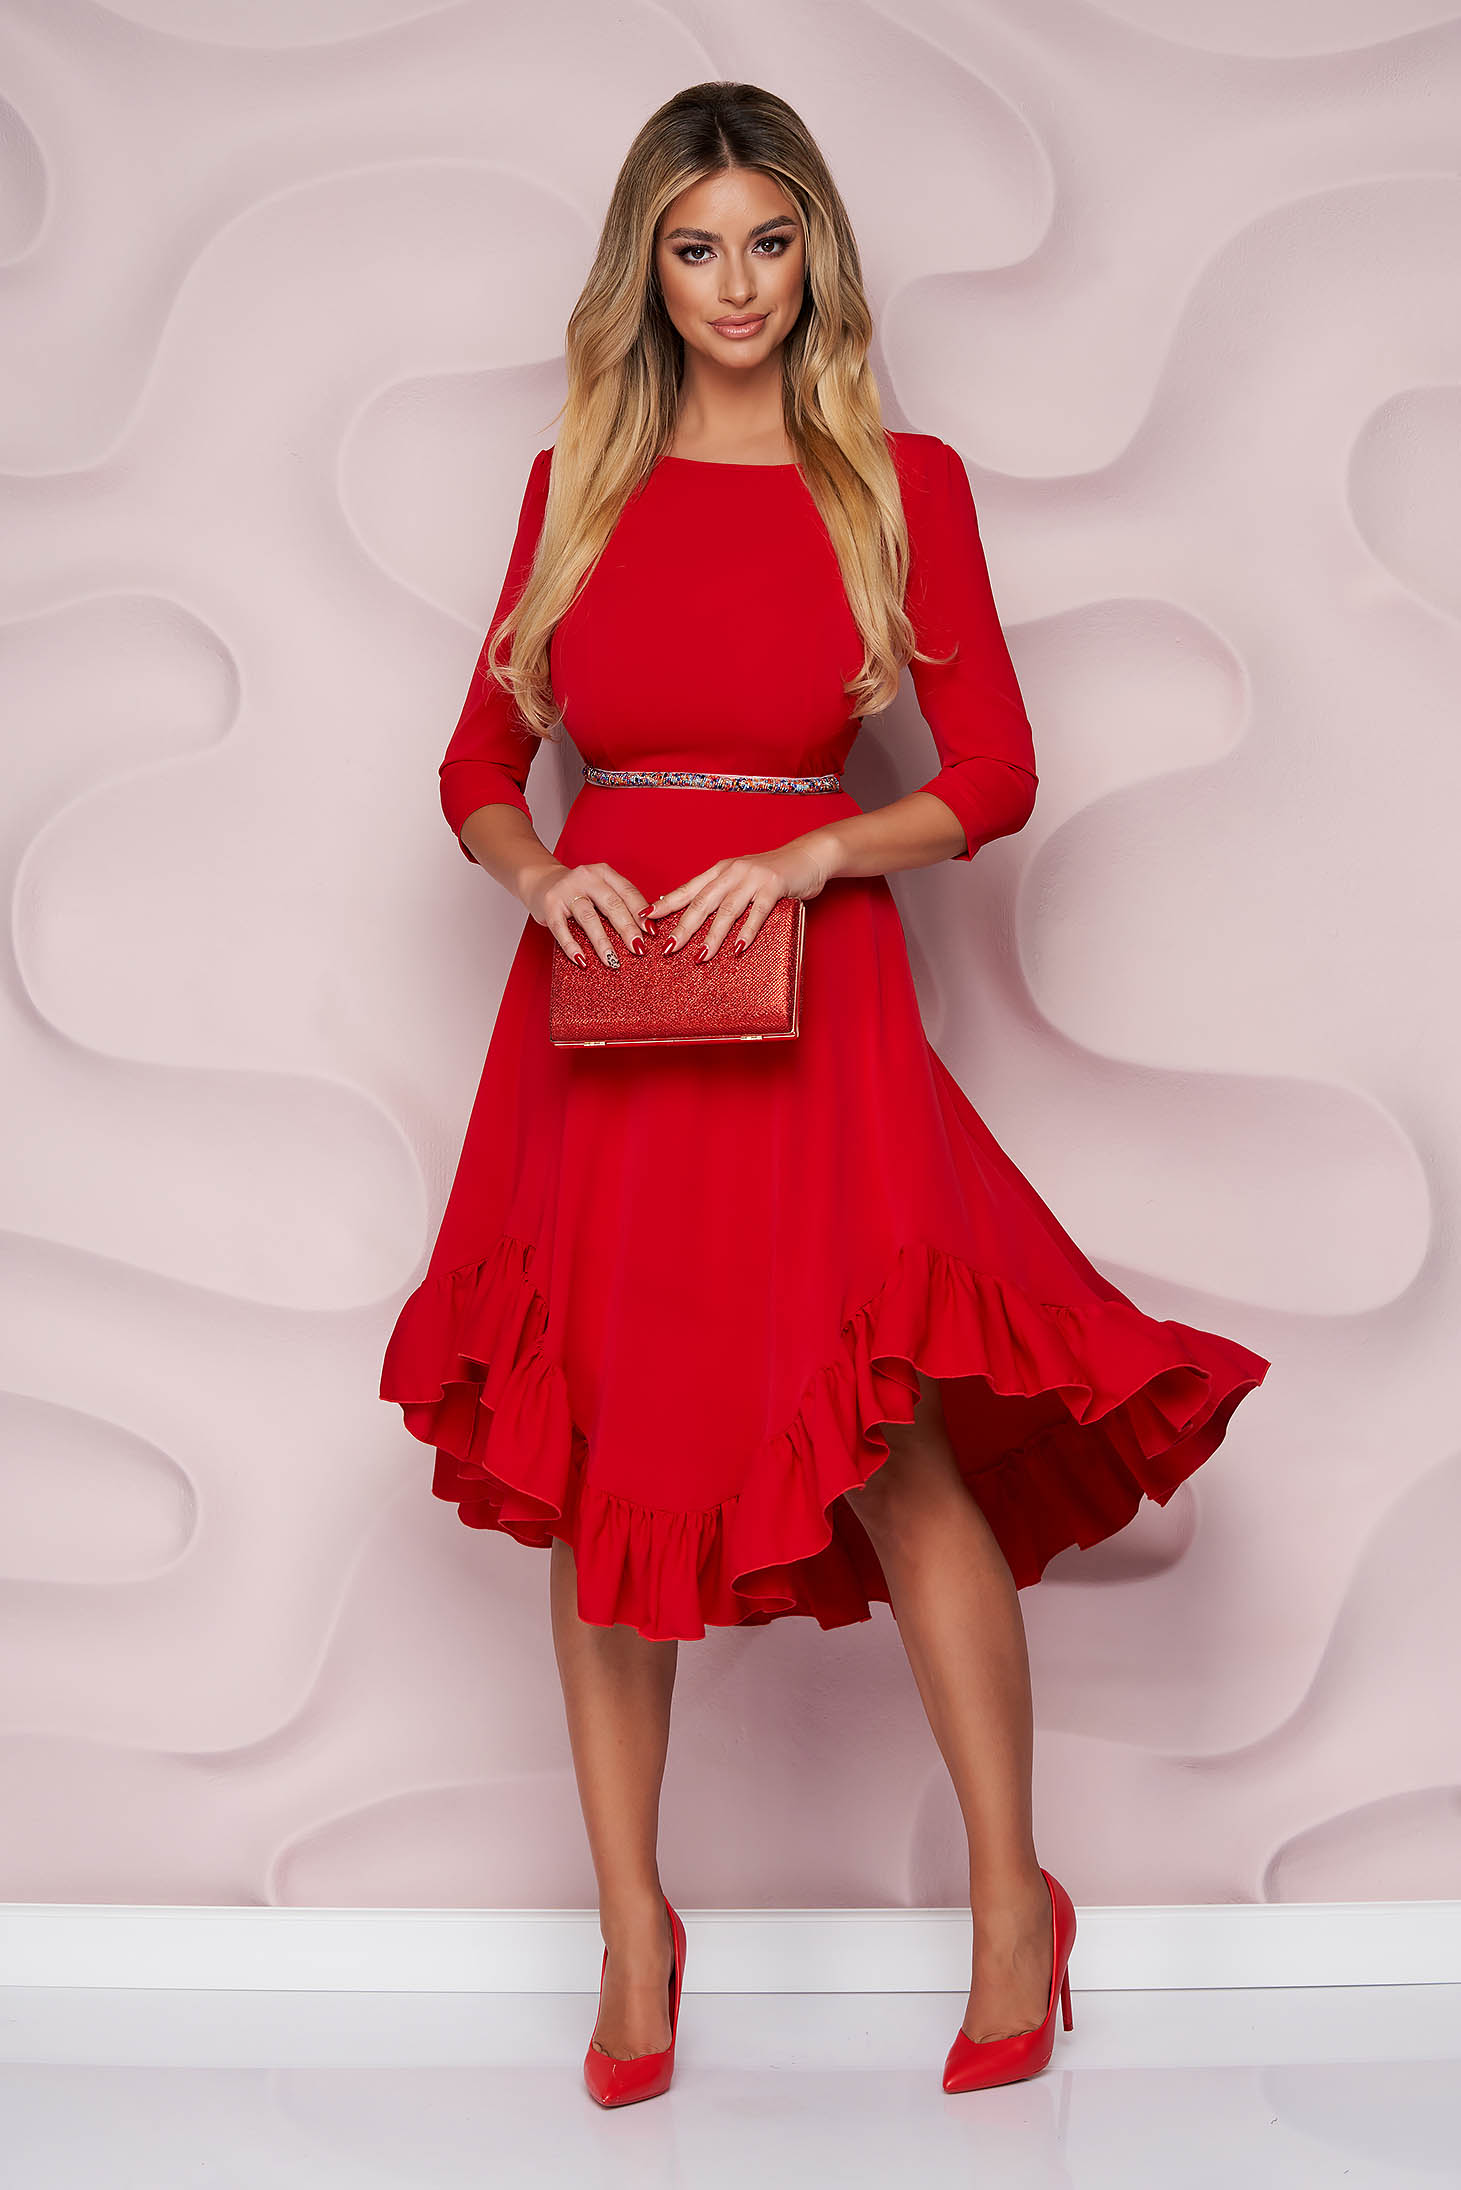 StarShinerS red dress occasional asymmetrical cloche with ruffles at the buttom of the dress nonelastic fabric light material